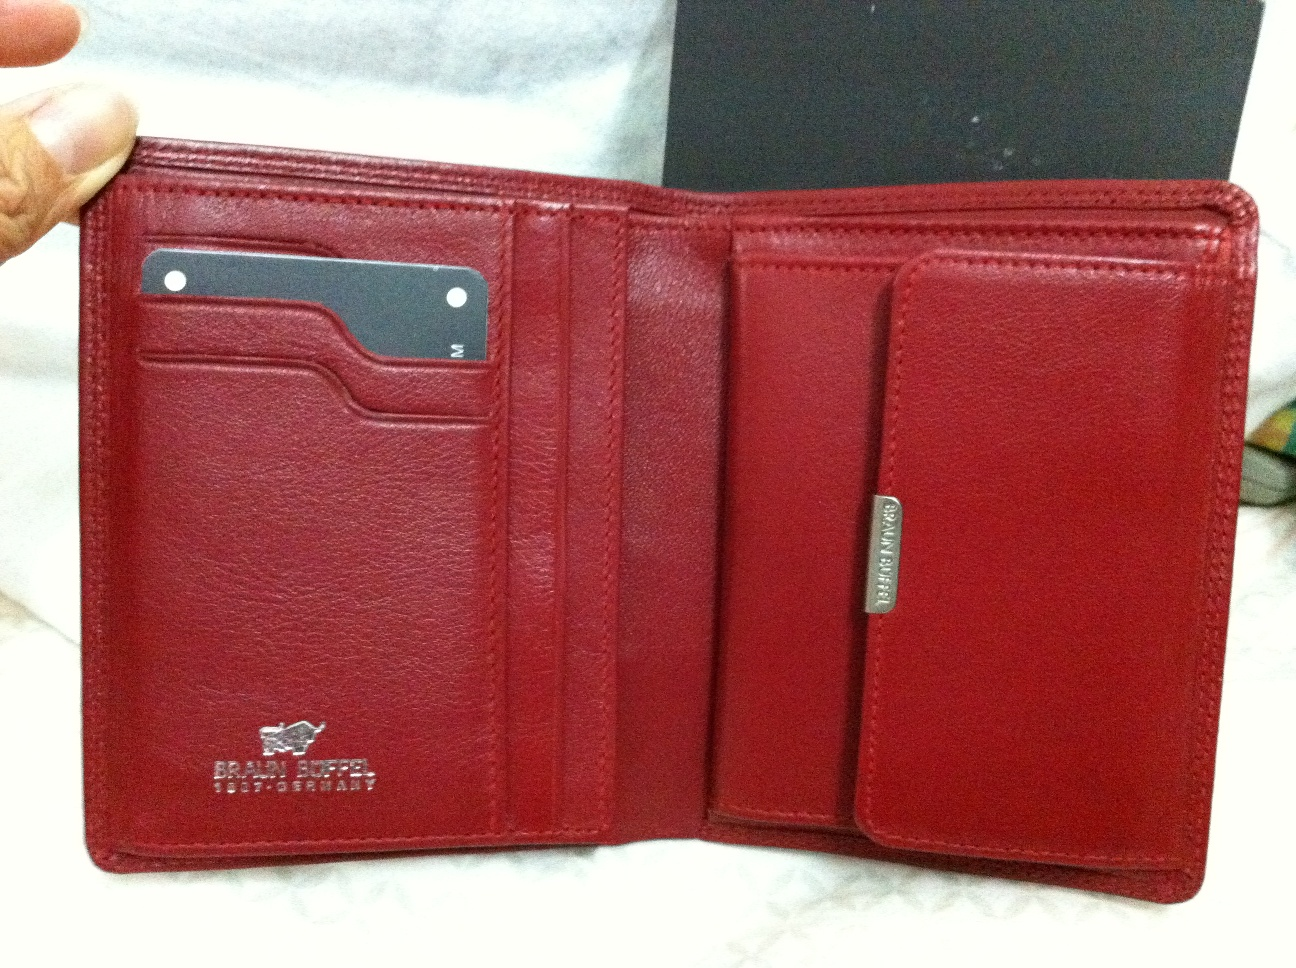 Authentic Luxury Items @ Bargain Price: Coach & Braun Buffel Wallets Sales~~Limited TIME released~!! Part 1